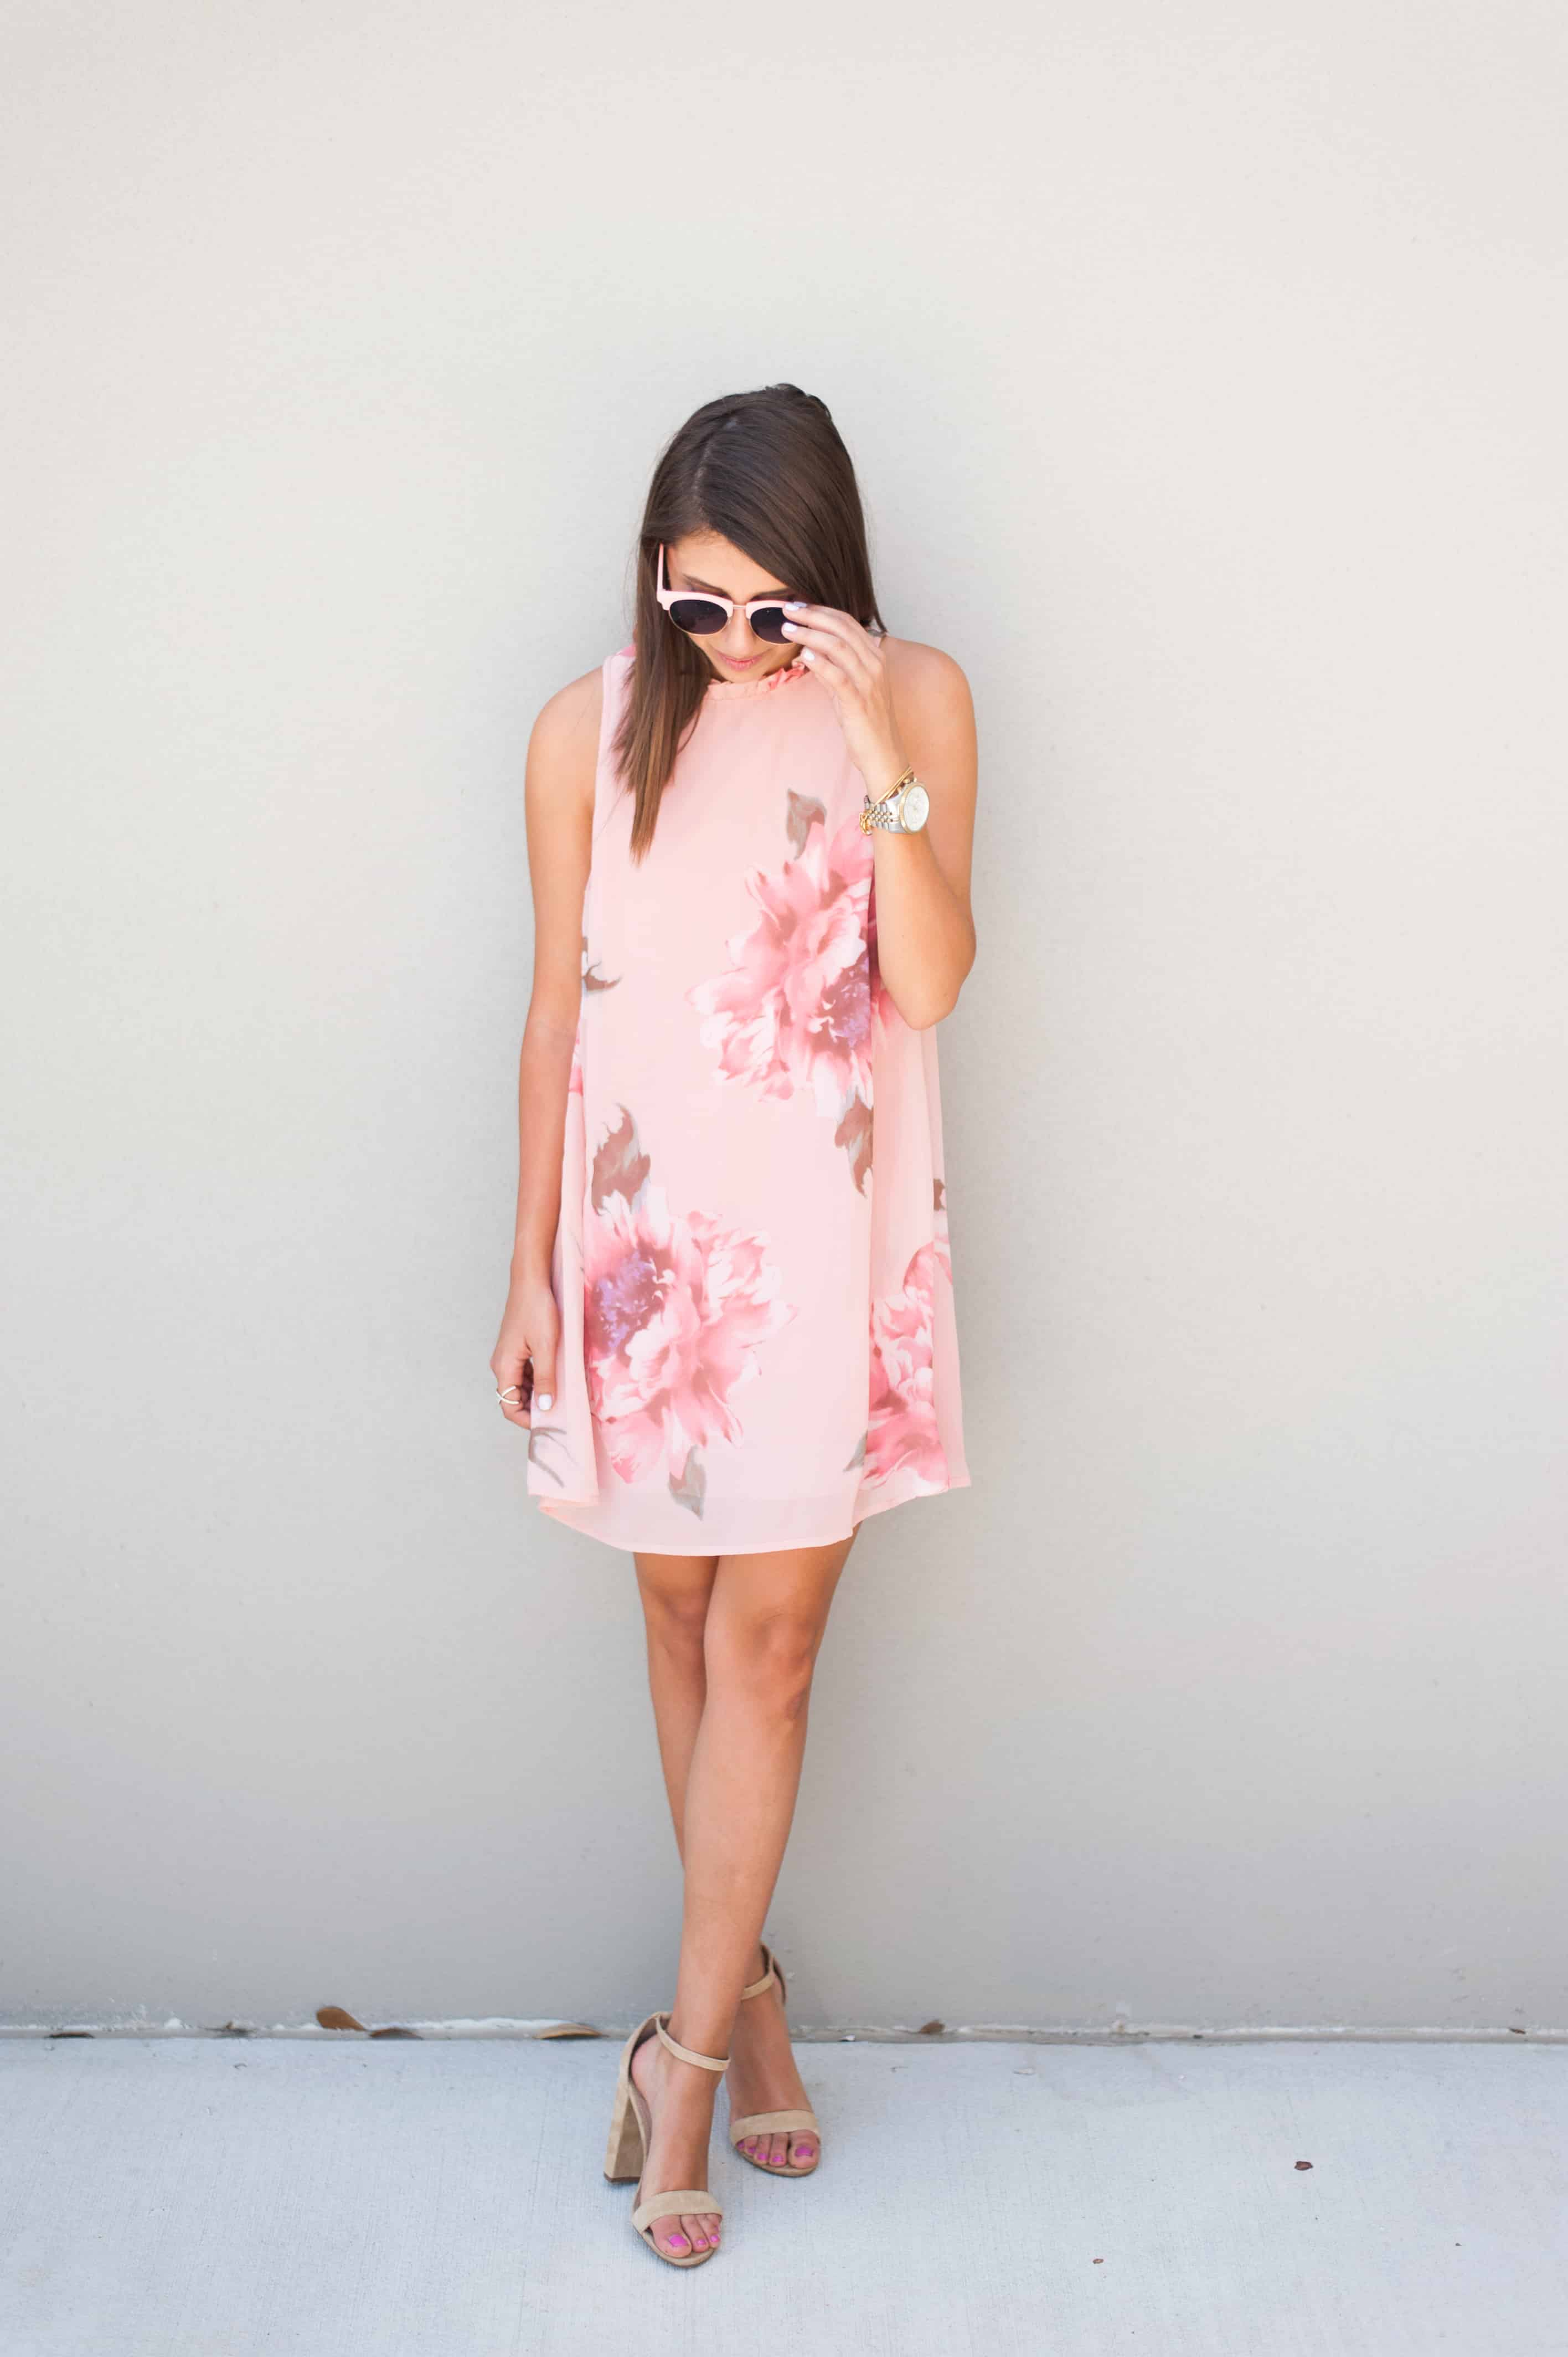 Dress Up Buttercup | Houston Fashion Blog - Dede Raad | A dress that screams Mothers Day